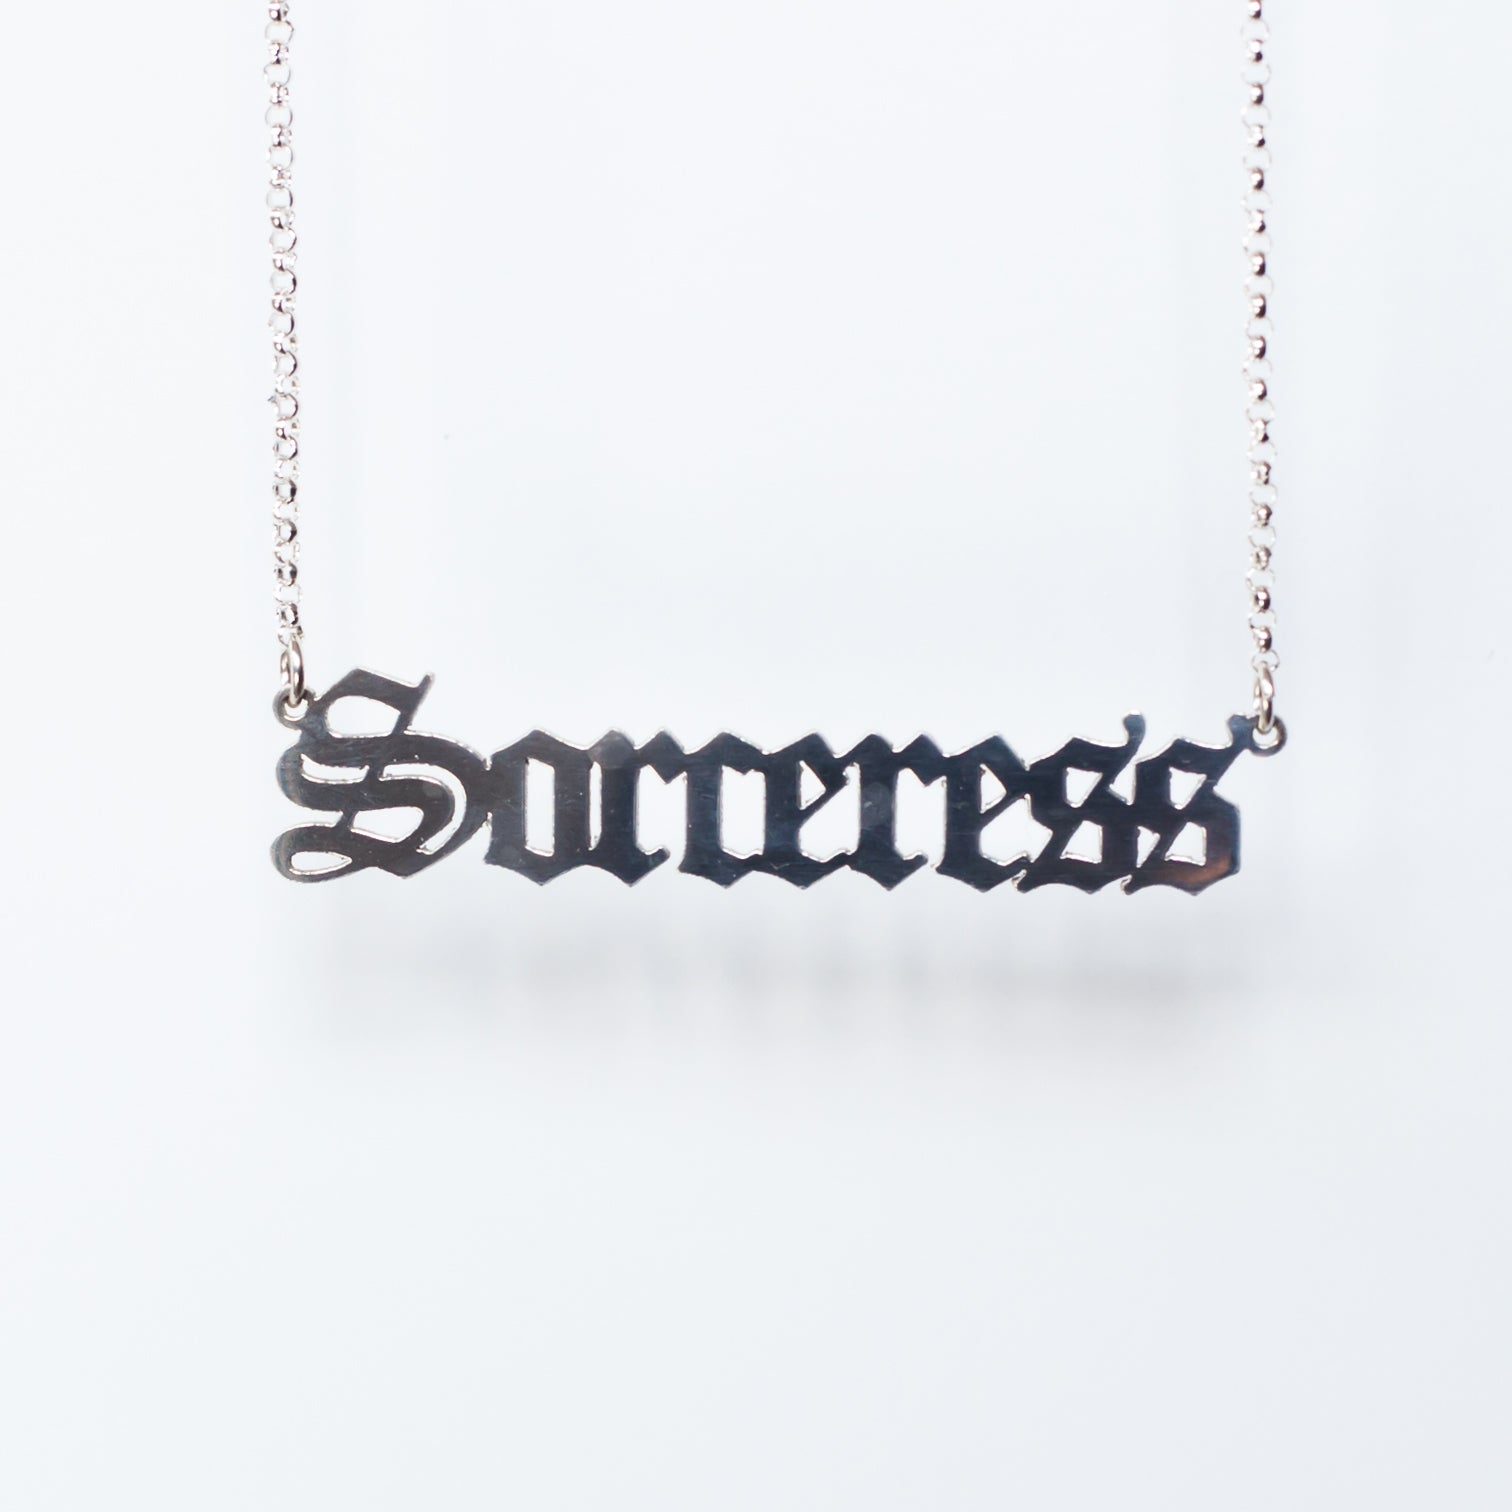 Sorceress Necklace in gothic blackletter font in sterling silver